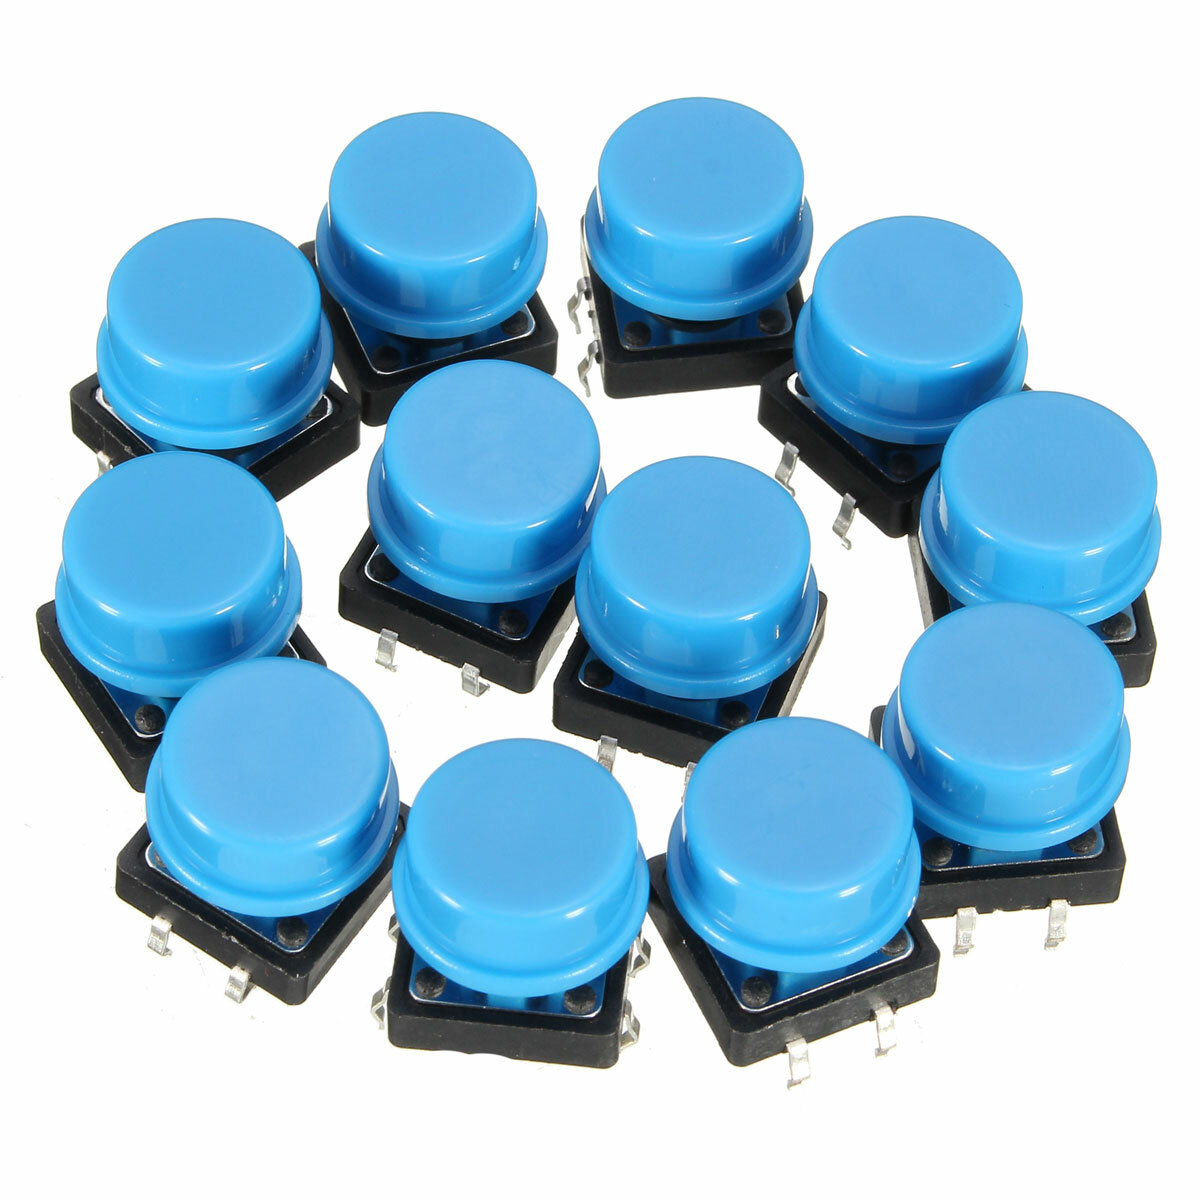 20Pcs Tactile Push Button Switch Momentary Tact Caps